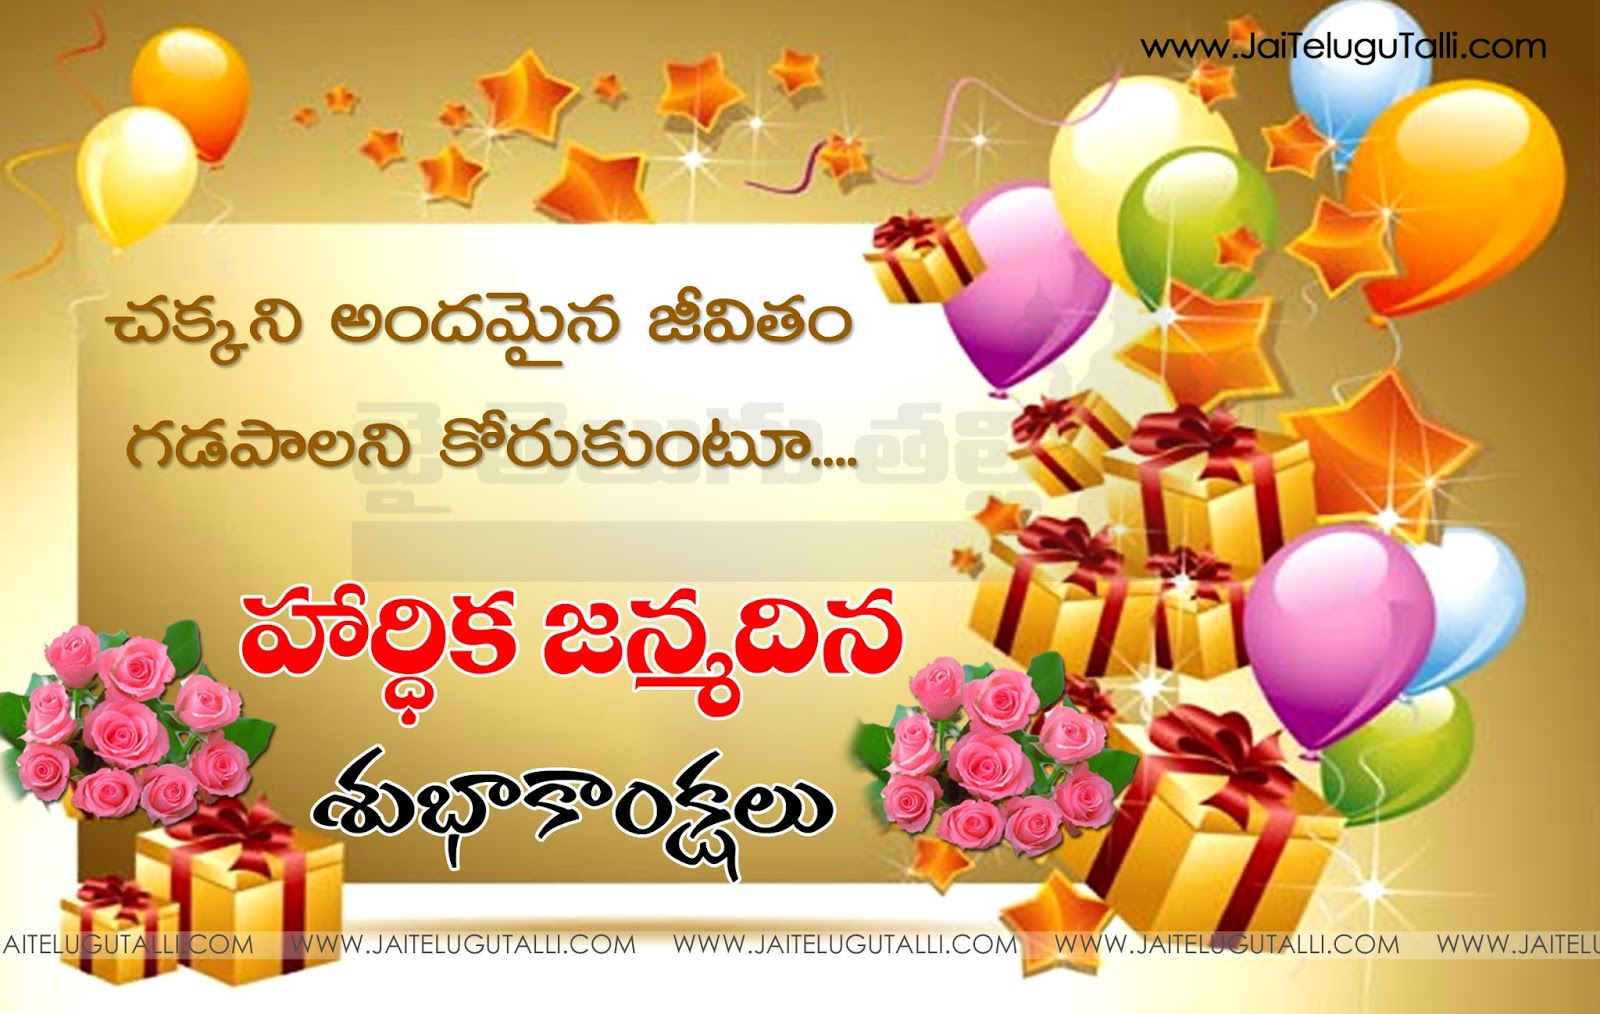 Happy Birthday Wishes and Quotes in Telugu with Nice Images – Telugu Birthday Greetings